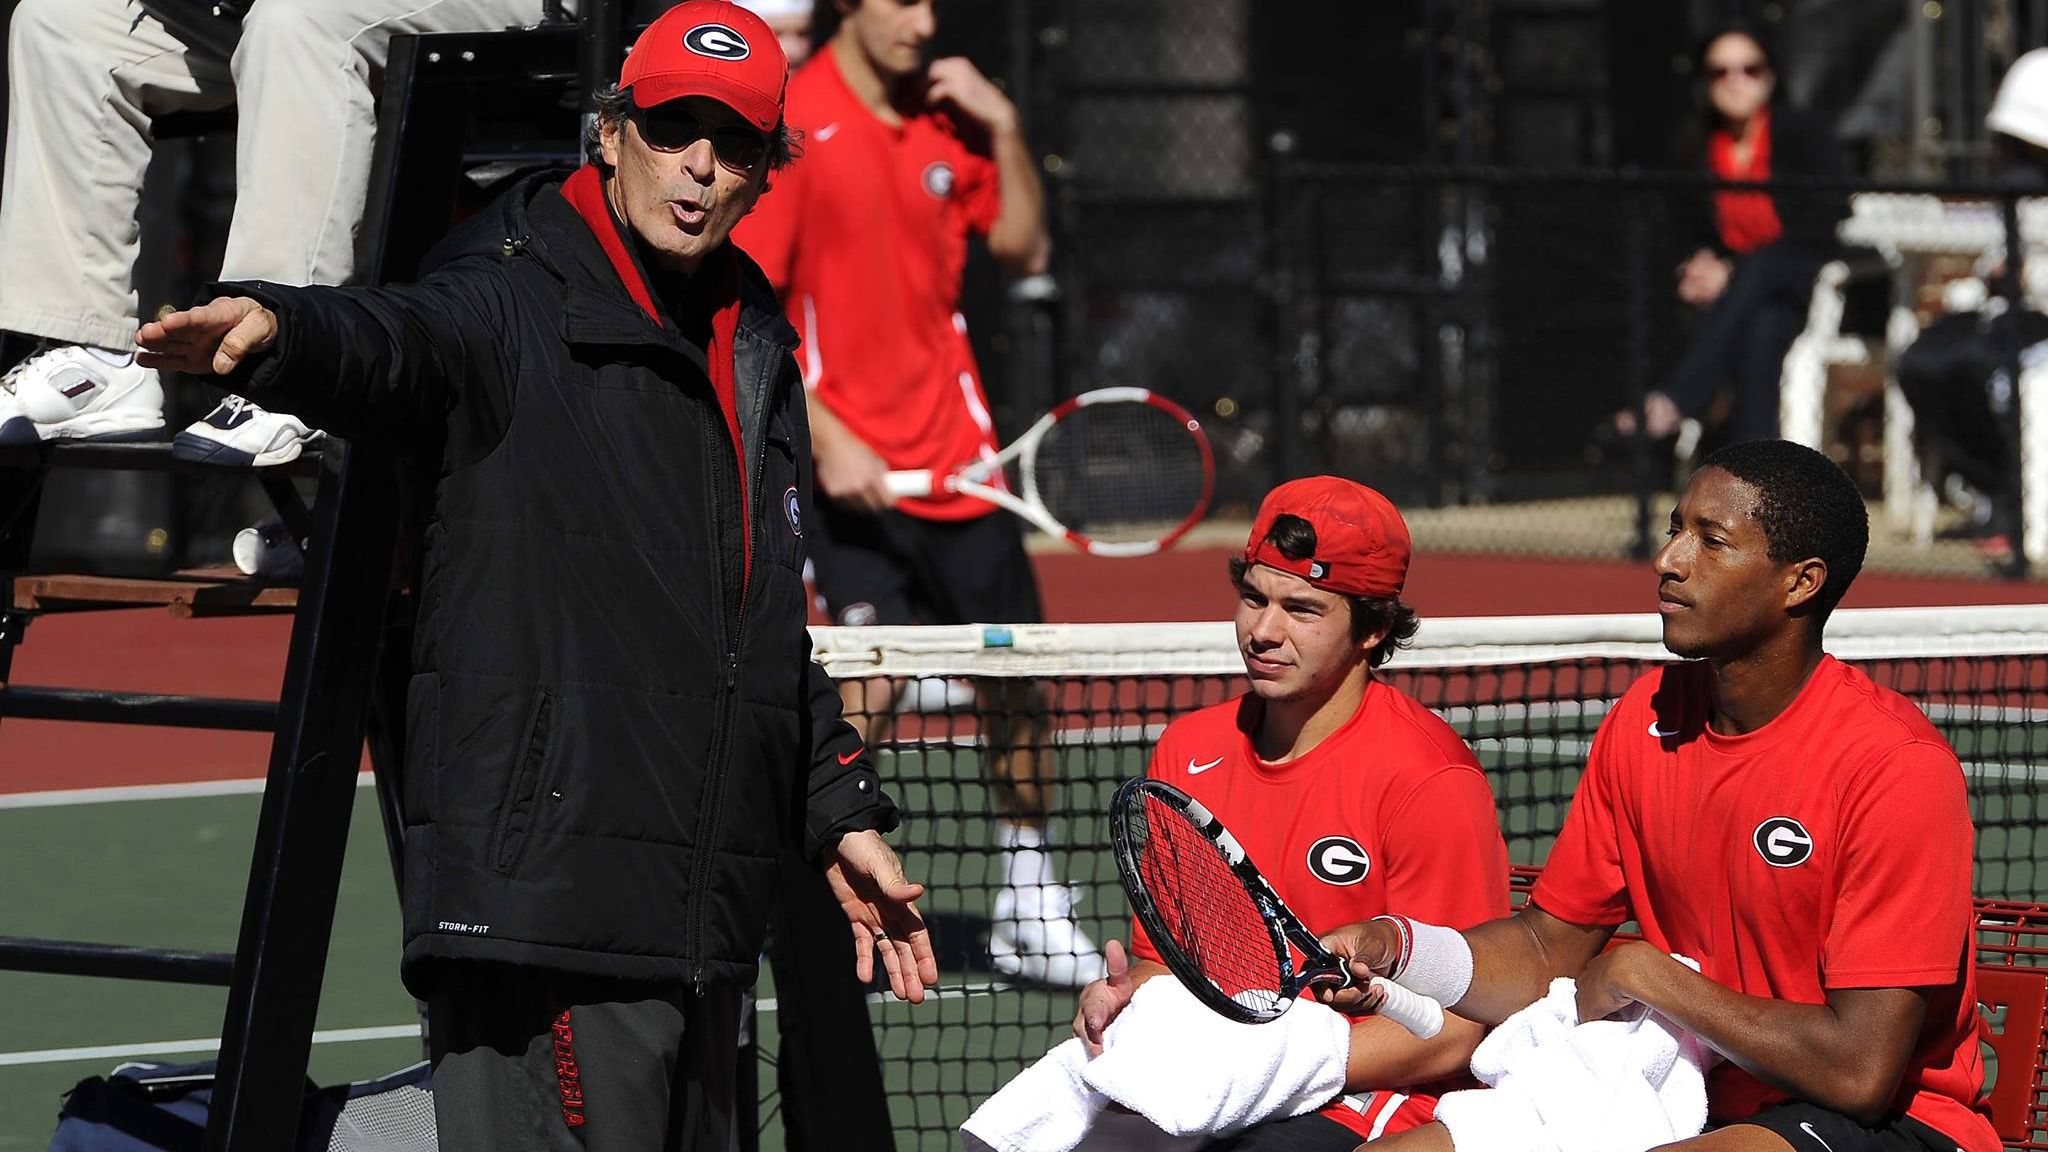 Georgia men's tennis beats UCLA 4-2